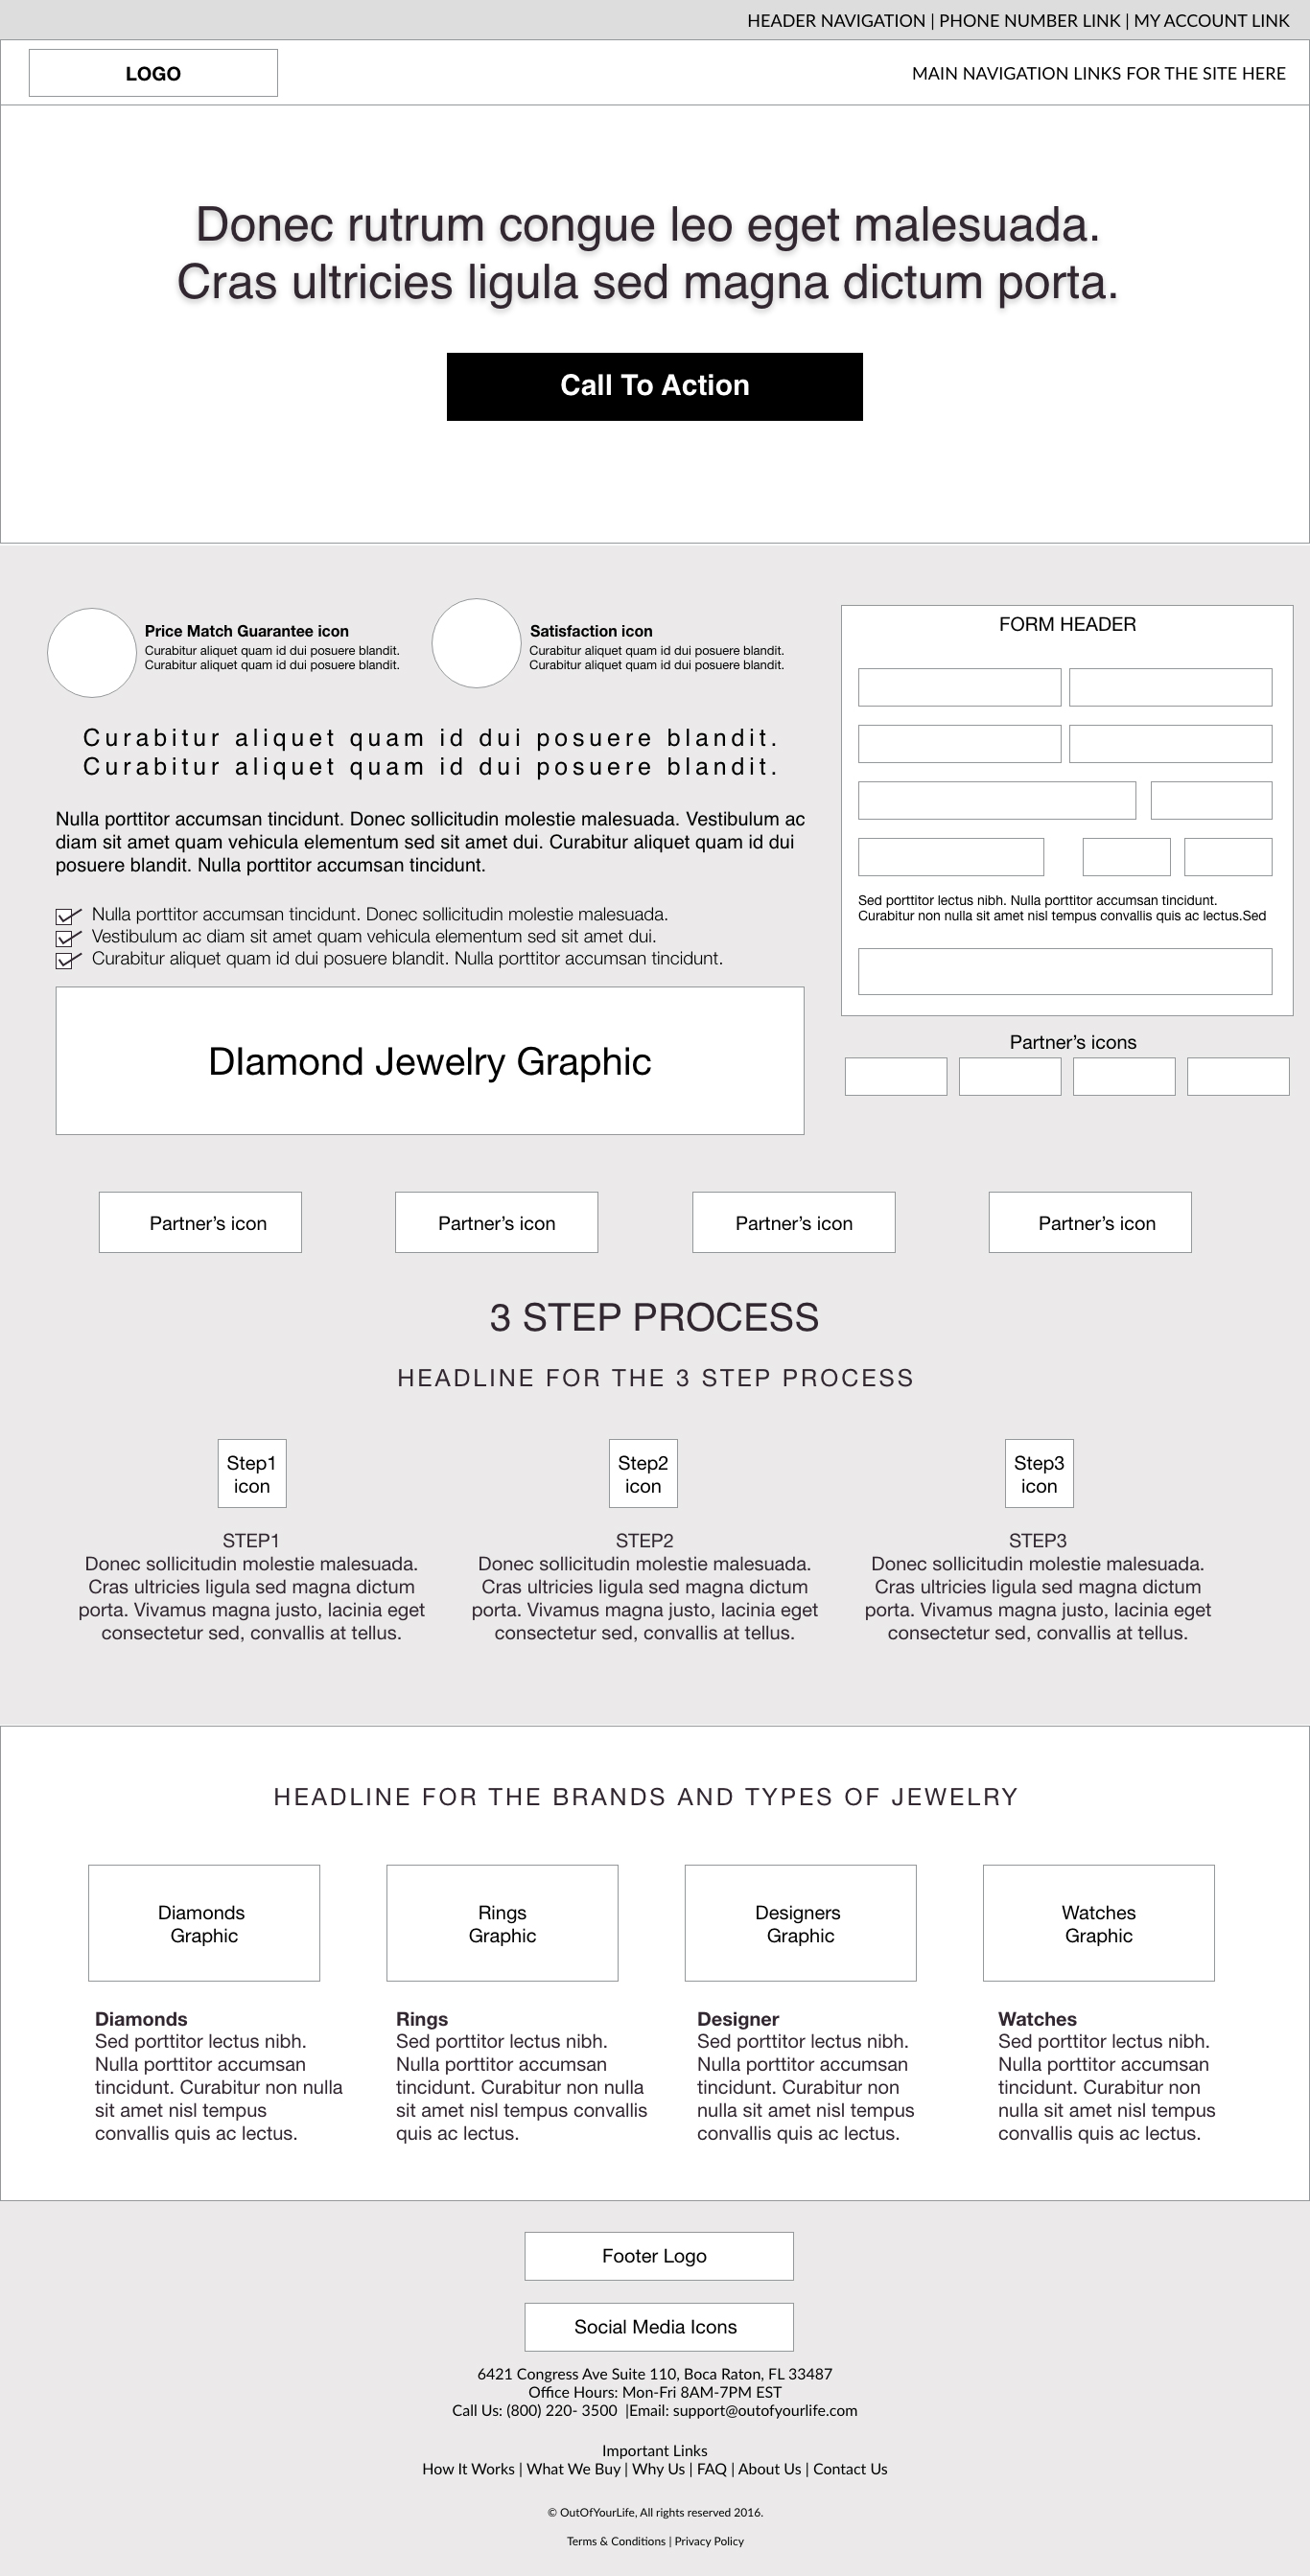 kunalamin.com-Out Of Your Life-homepage_wireframe